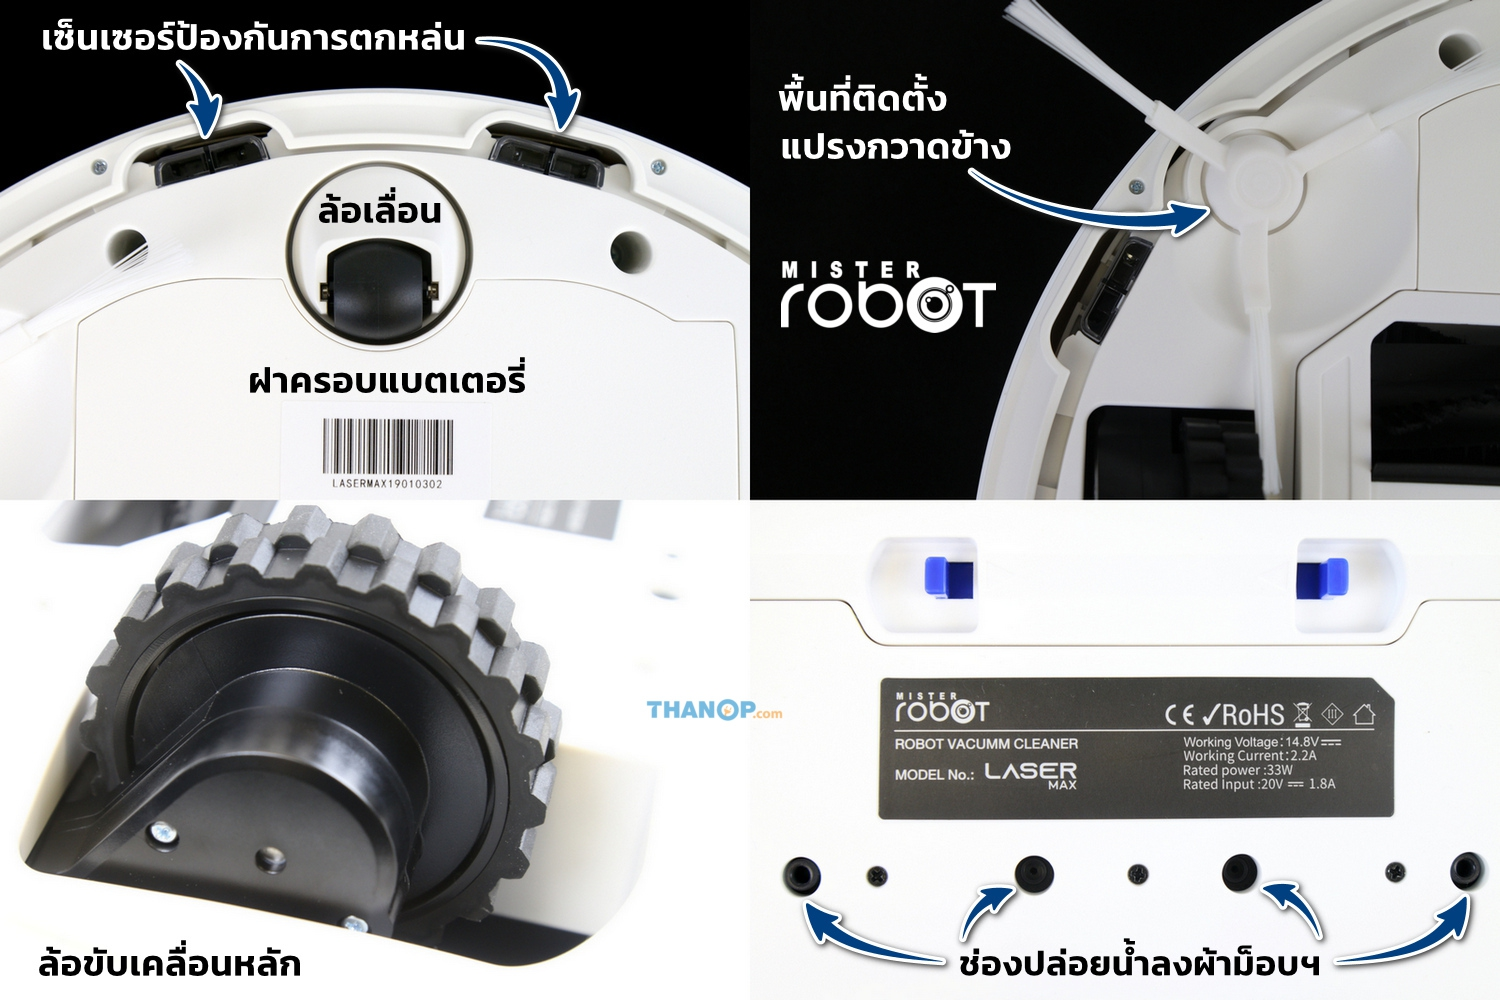 Mister Robot LASER MAX Feature Extra Large Lithium-Ion Battery